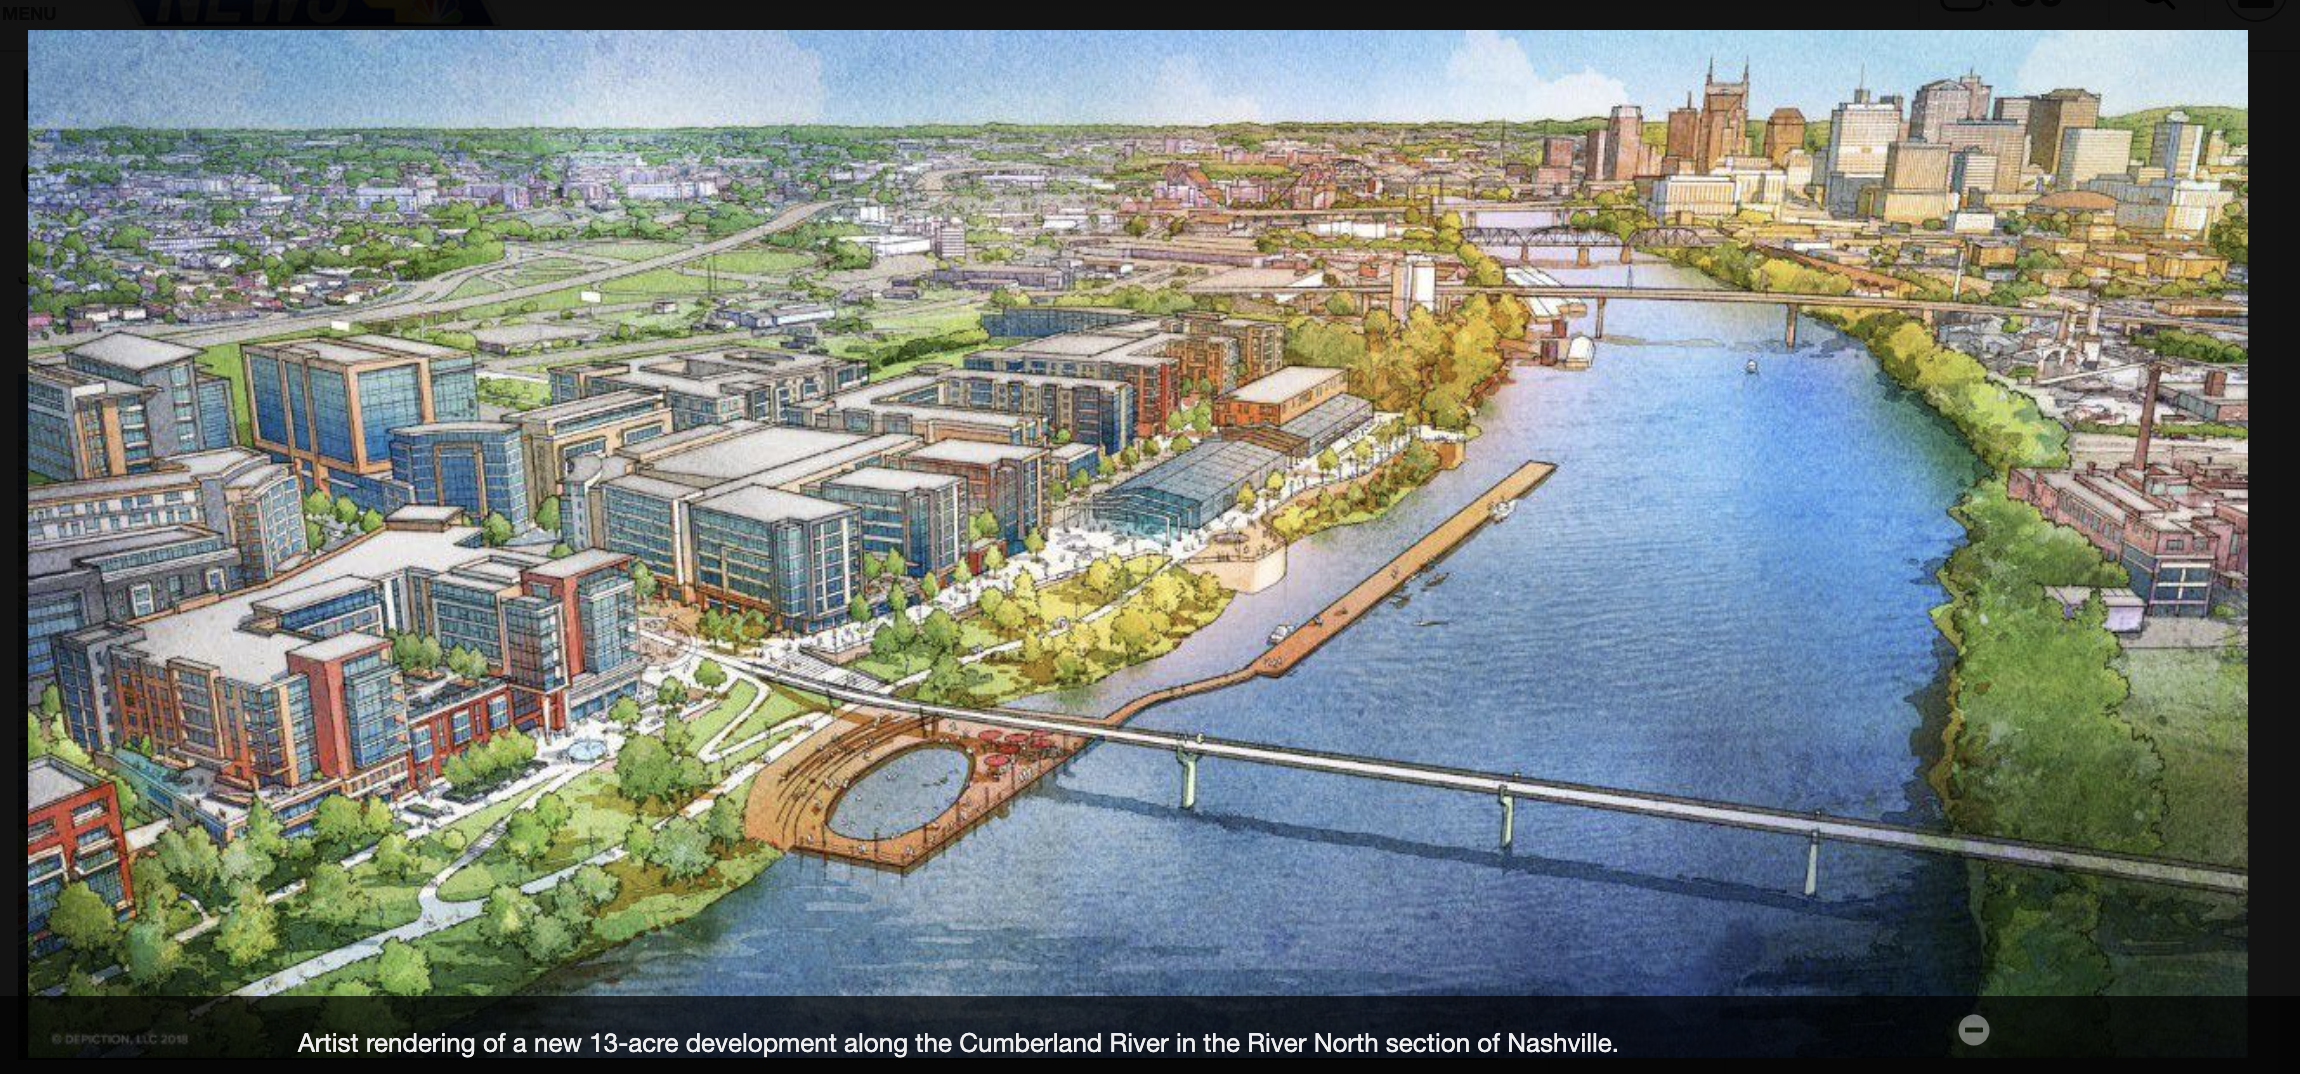 Nashville's Newest River Development